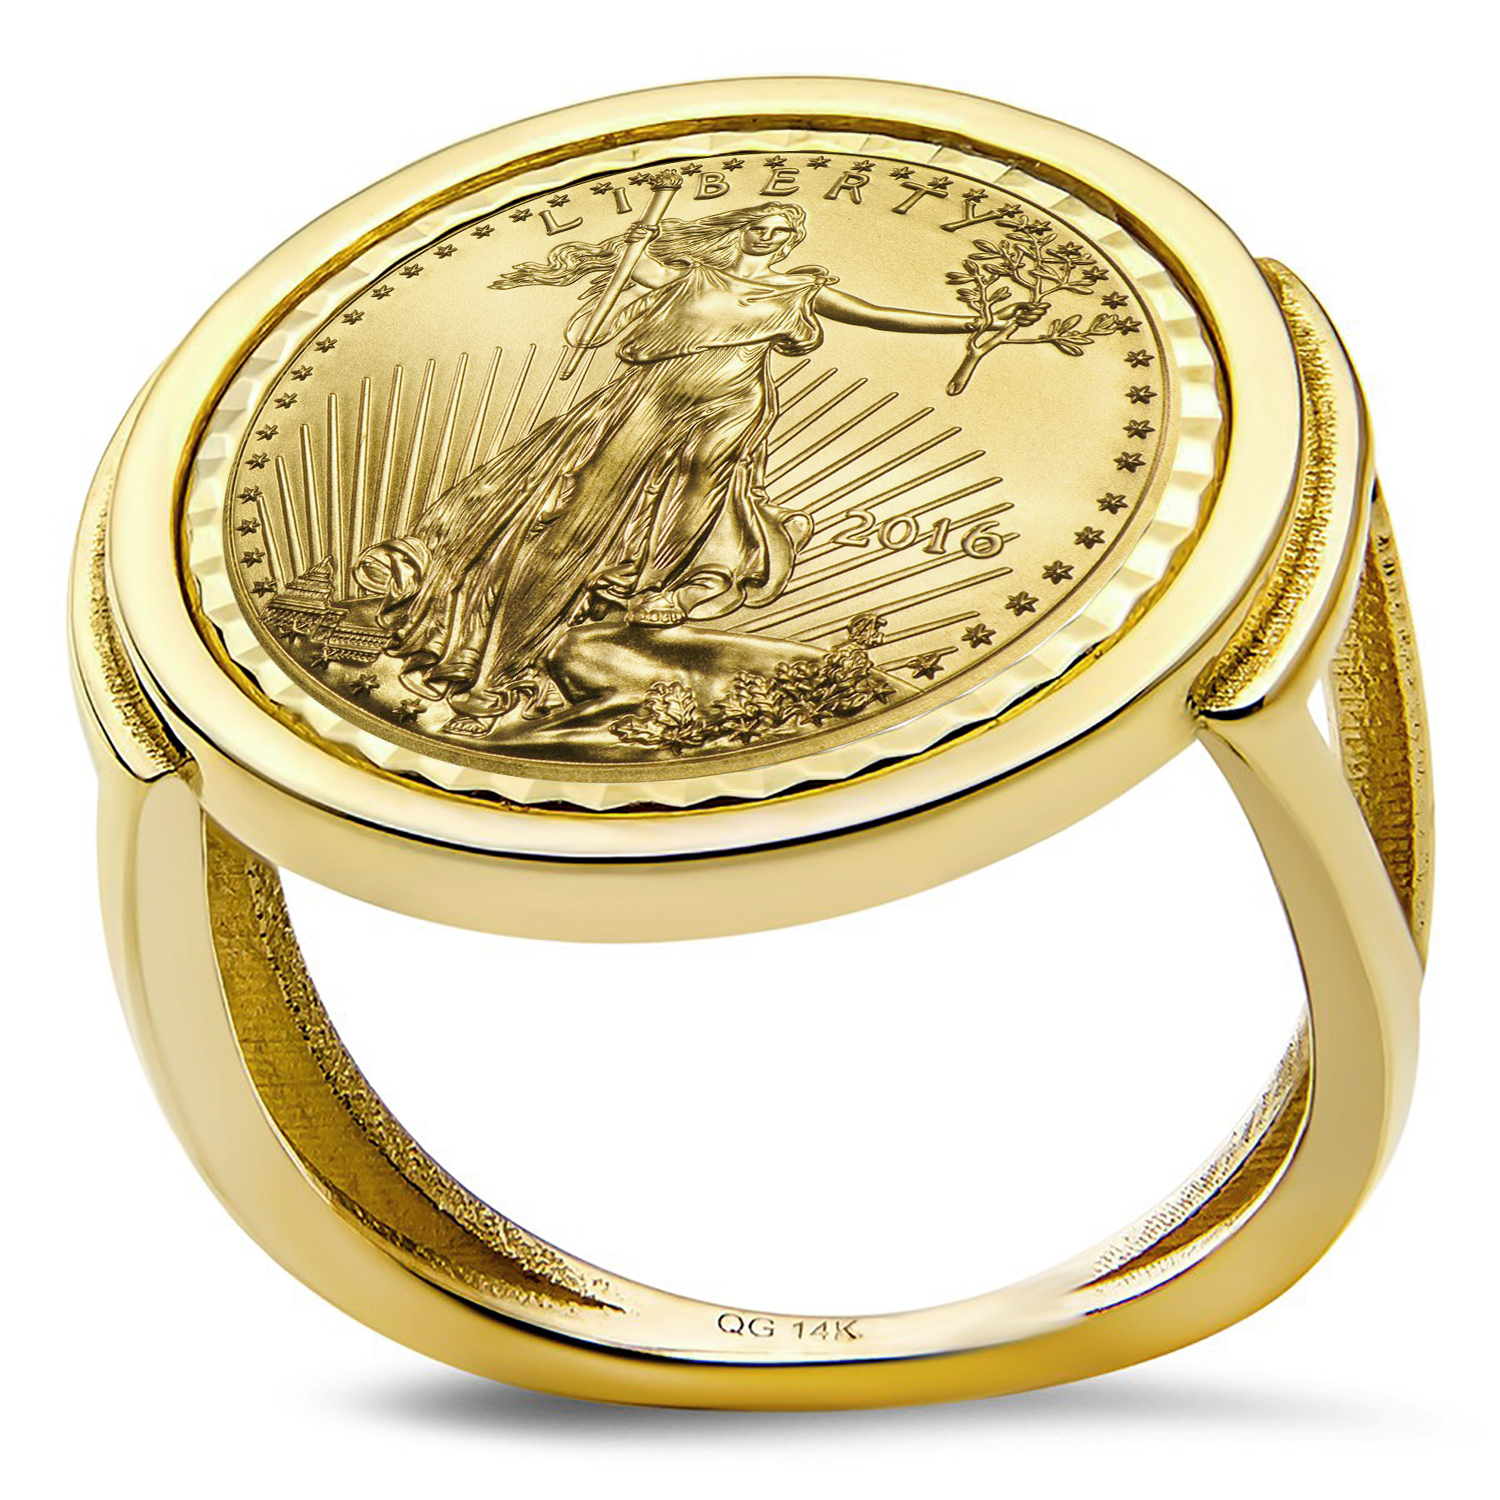 2016 1/10 oz Gold Eagle Ring (Diamond-Cut Polished-Prong)